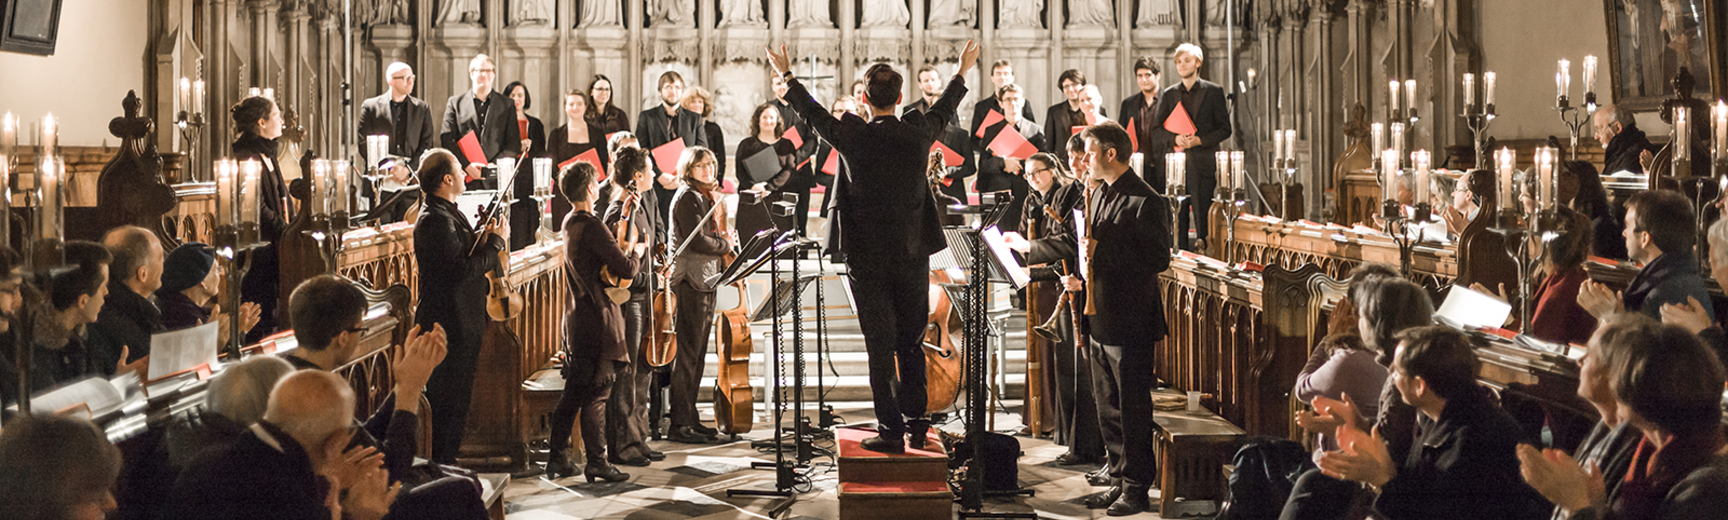 The Oxford Bach Soloists, in a church apse, are standing to receive applause from the audience in the nave in the foreground